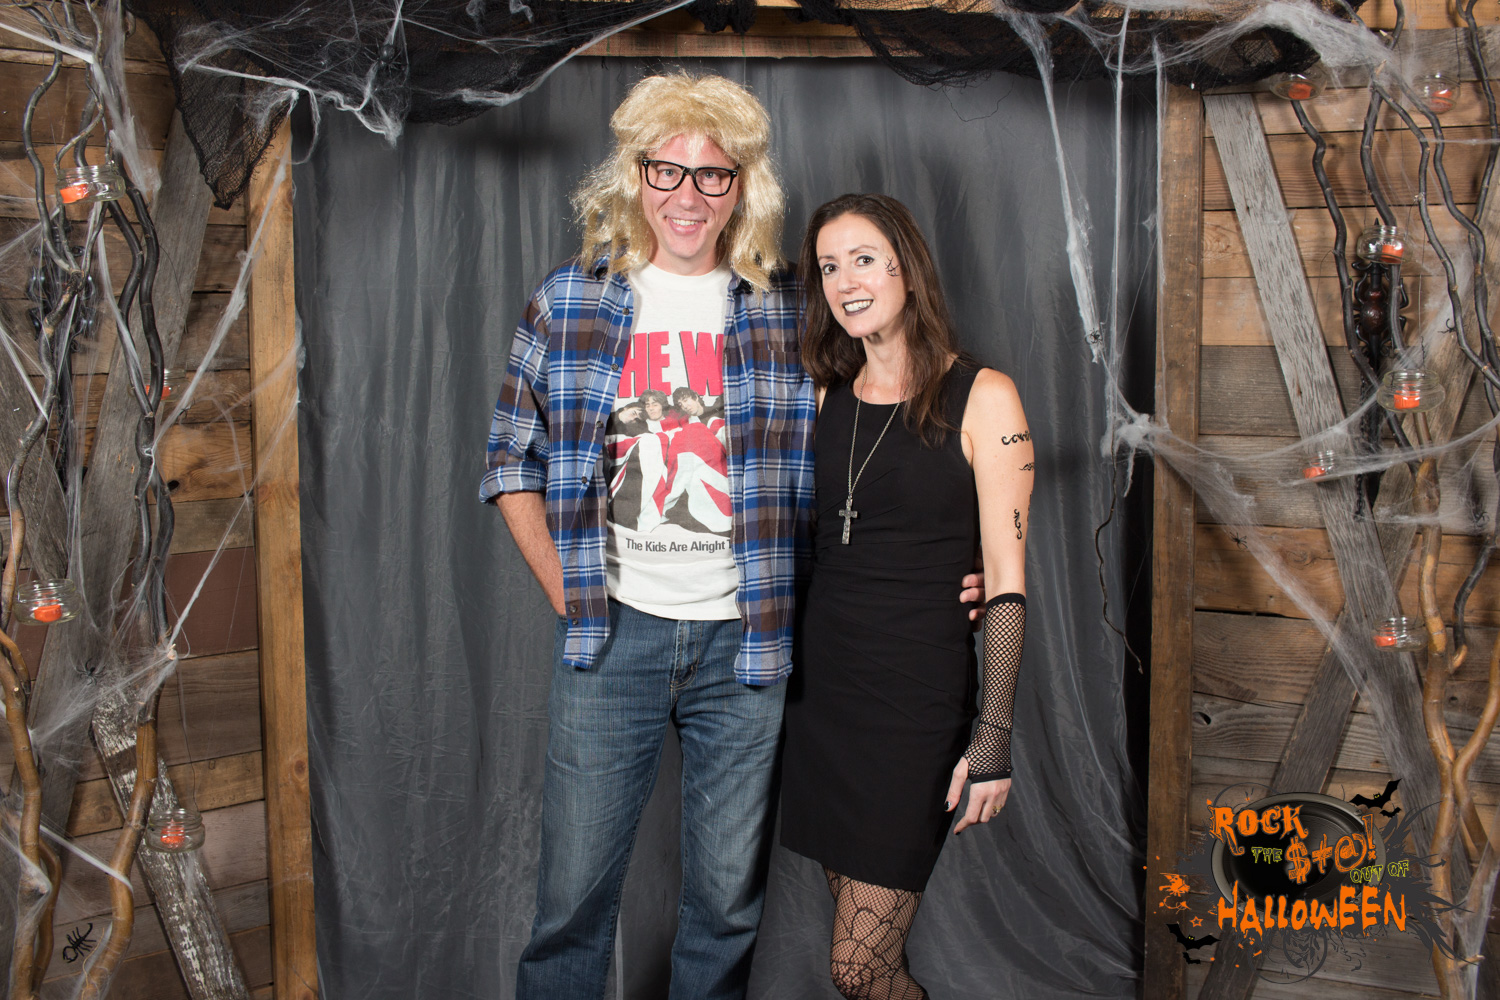 Halloween-PhotoBooth-008-6673